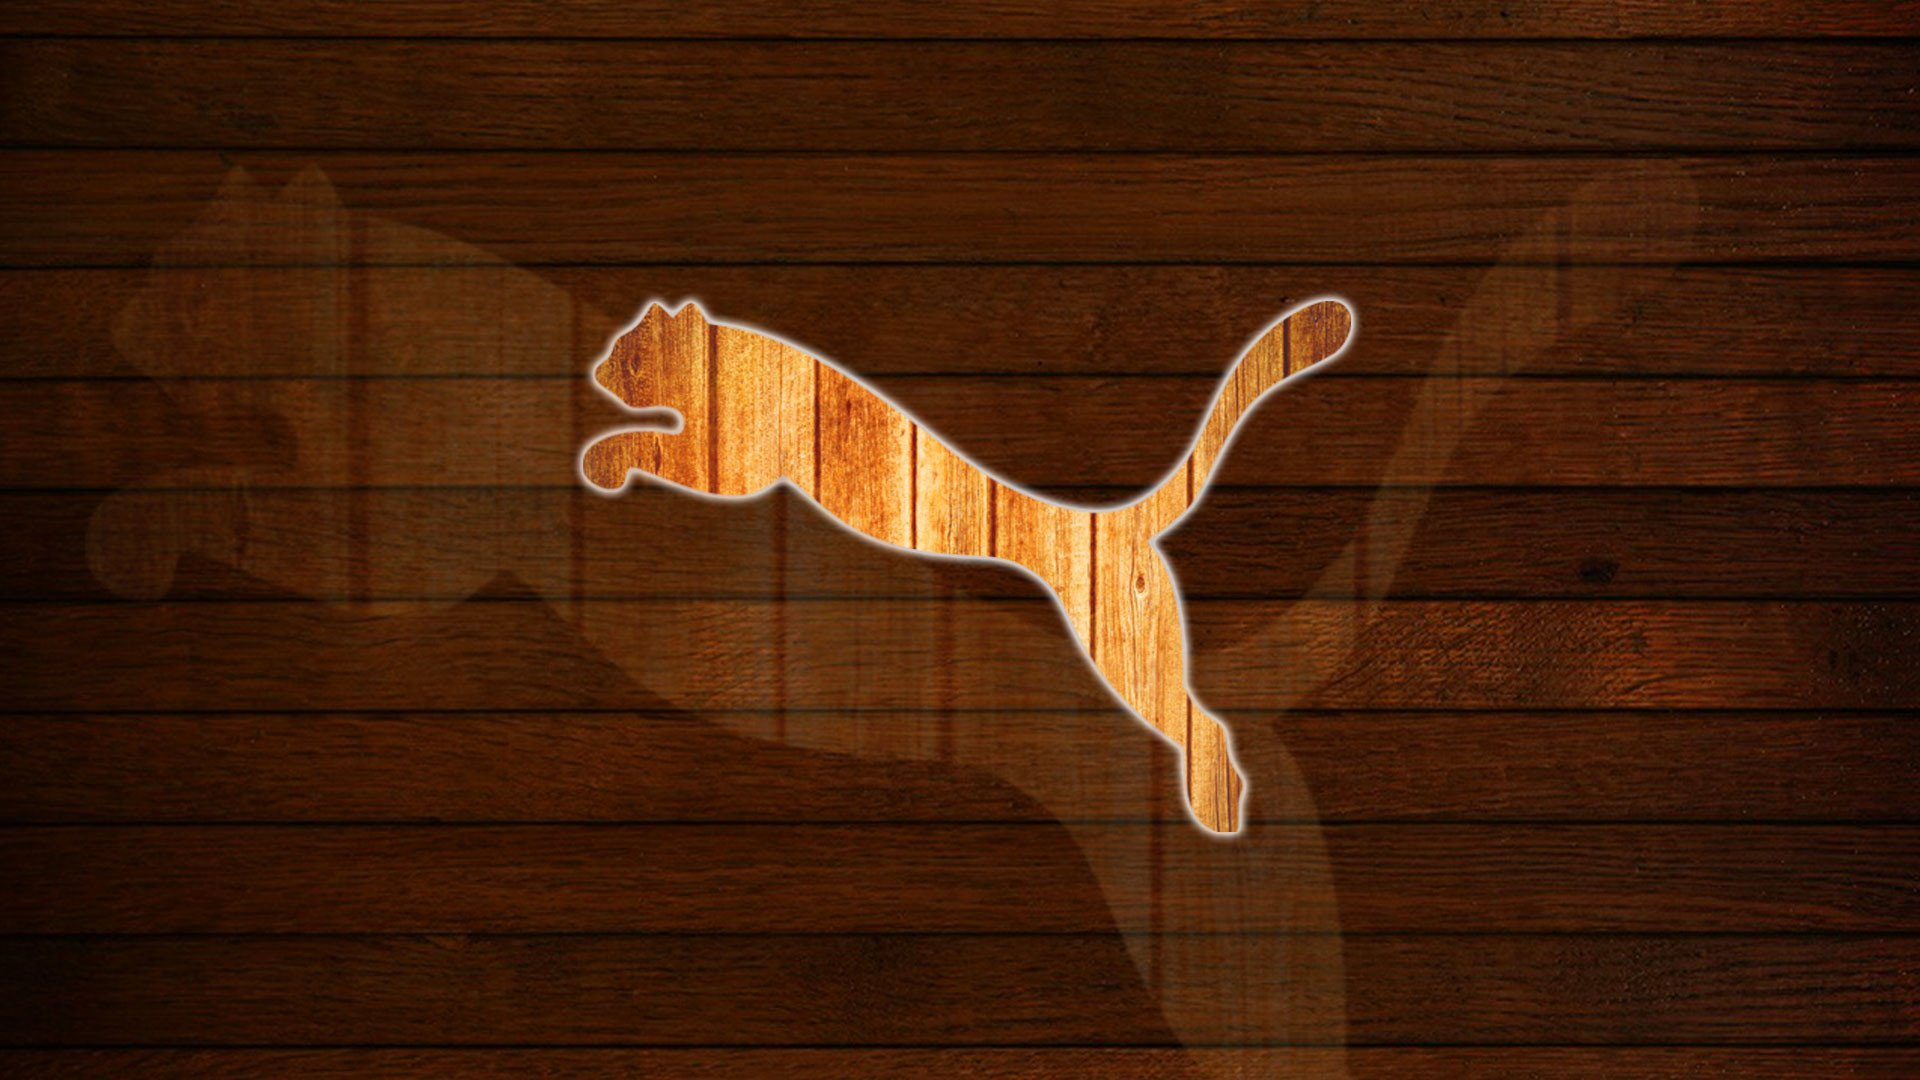 puma wallpaper logo - HD 1920×1080